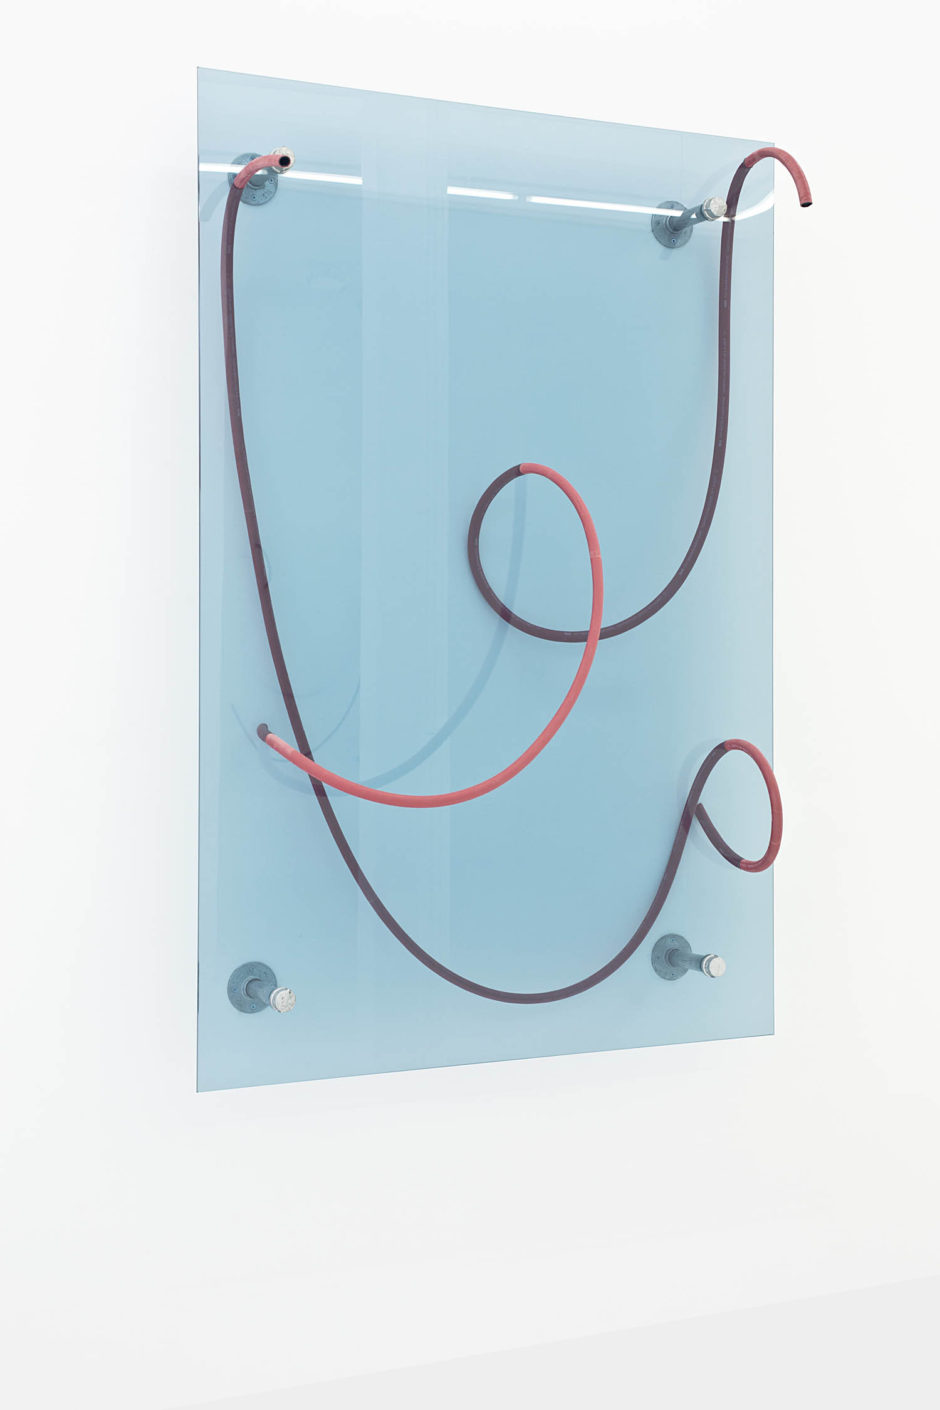 """Release (Line Drawing)"", 2015, hose, glass, steel, hardware, 72 x 48 x 15 inches, 182.9 x 121.9 x 38.1 cm"